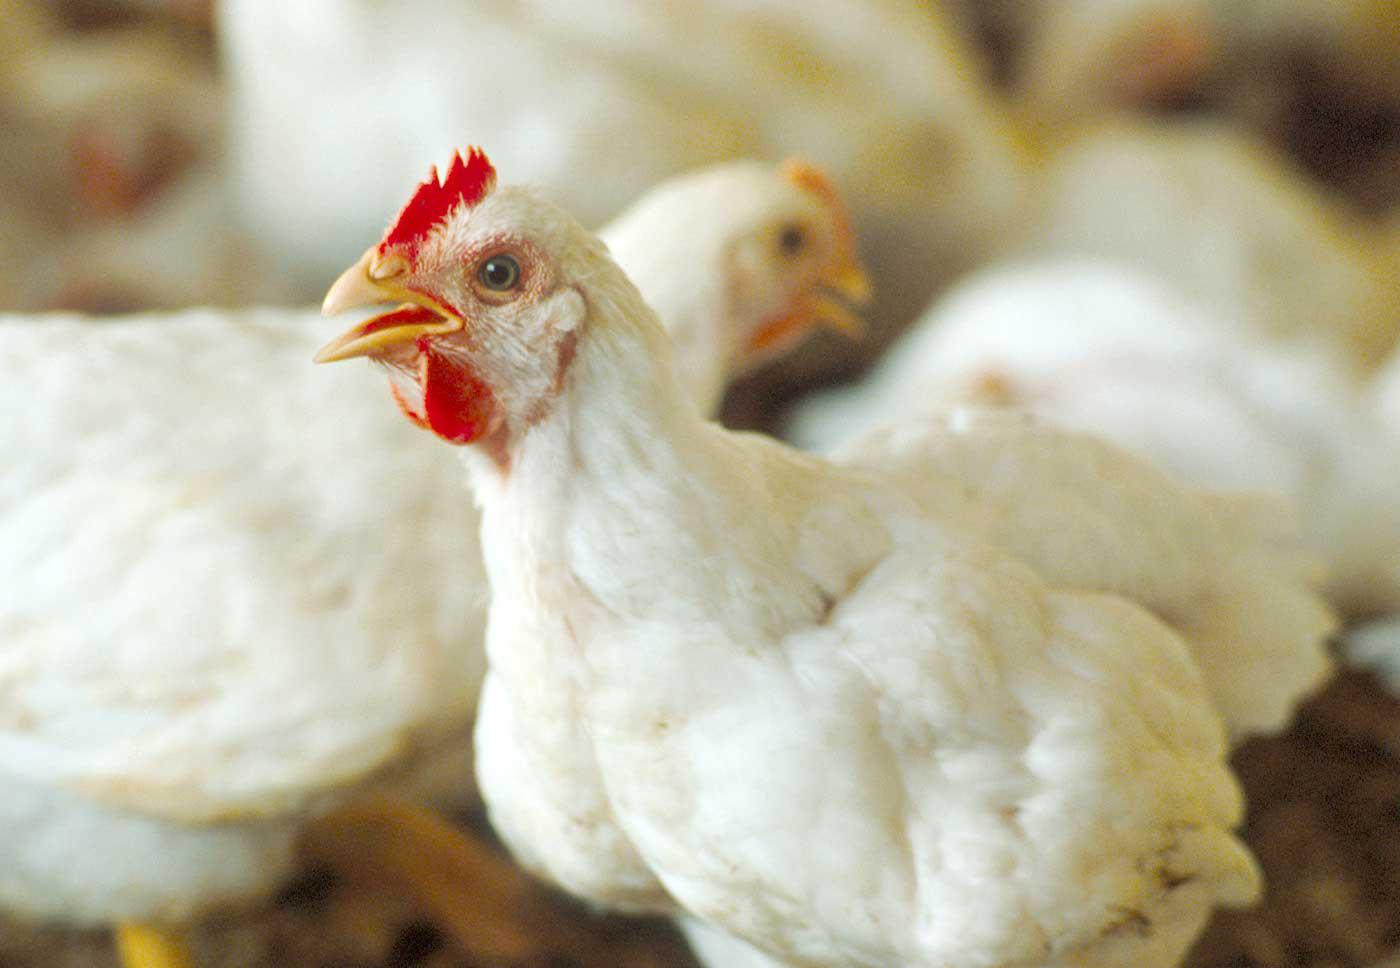 Poultry is Mississippi's top crop in terms of farmgate value. The commodity posted an estimated value of $2.37 billion for 2009. (Photo by MSU Ag Communications/Jim Lytle)